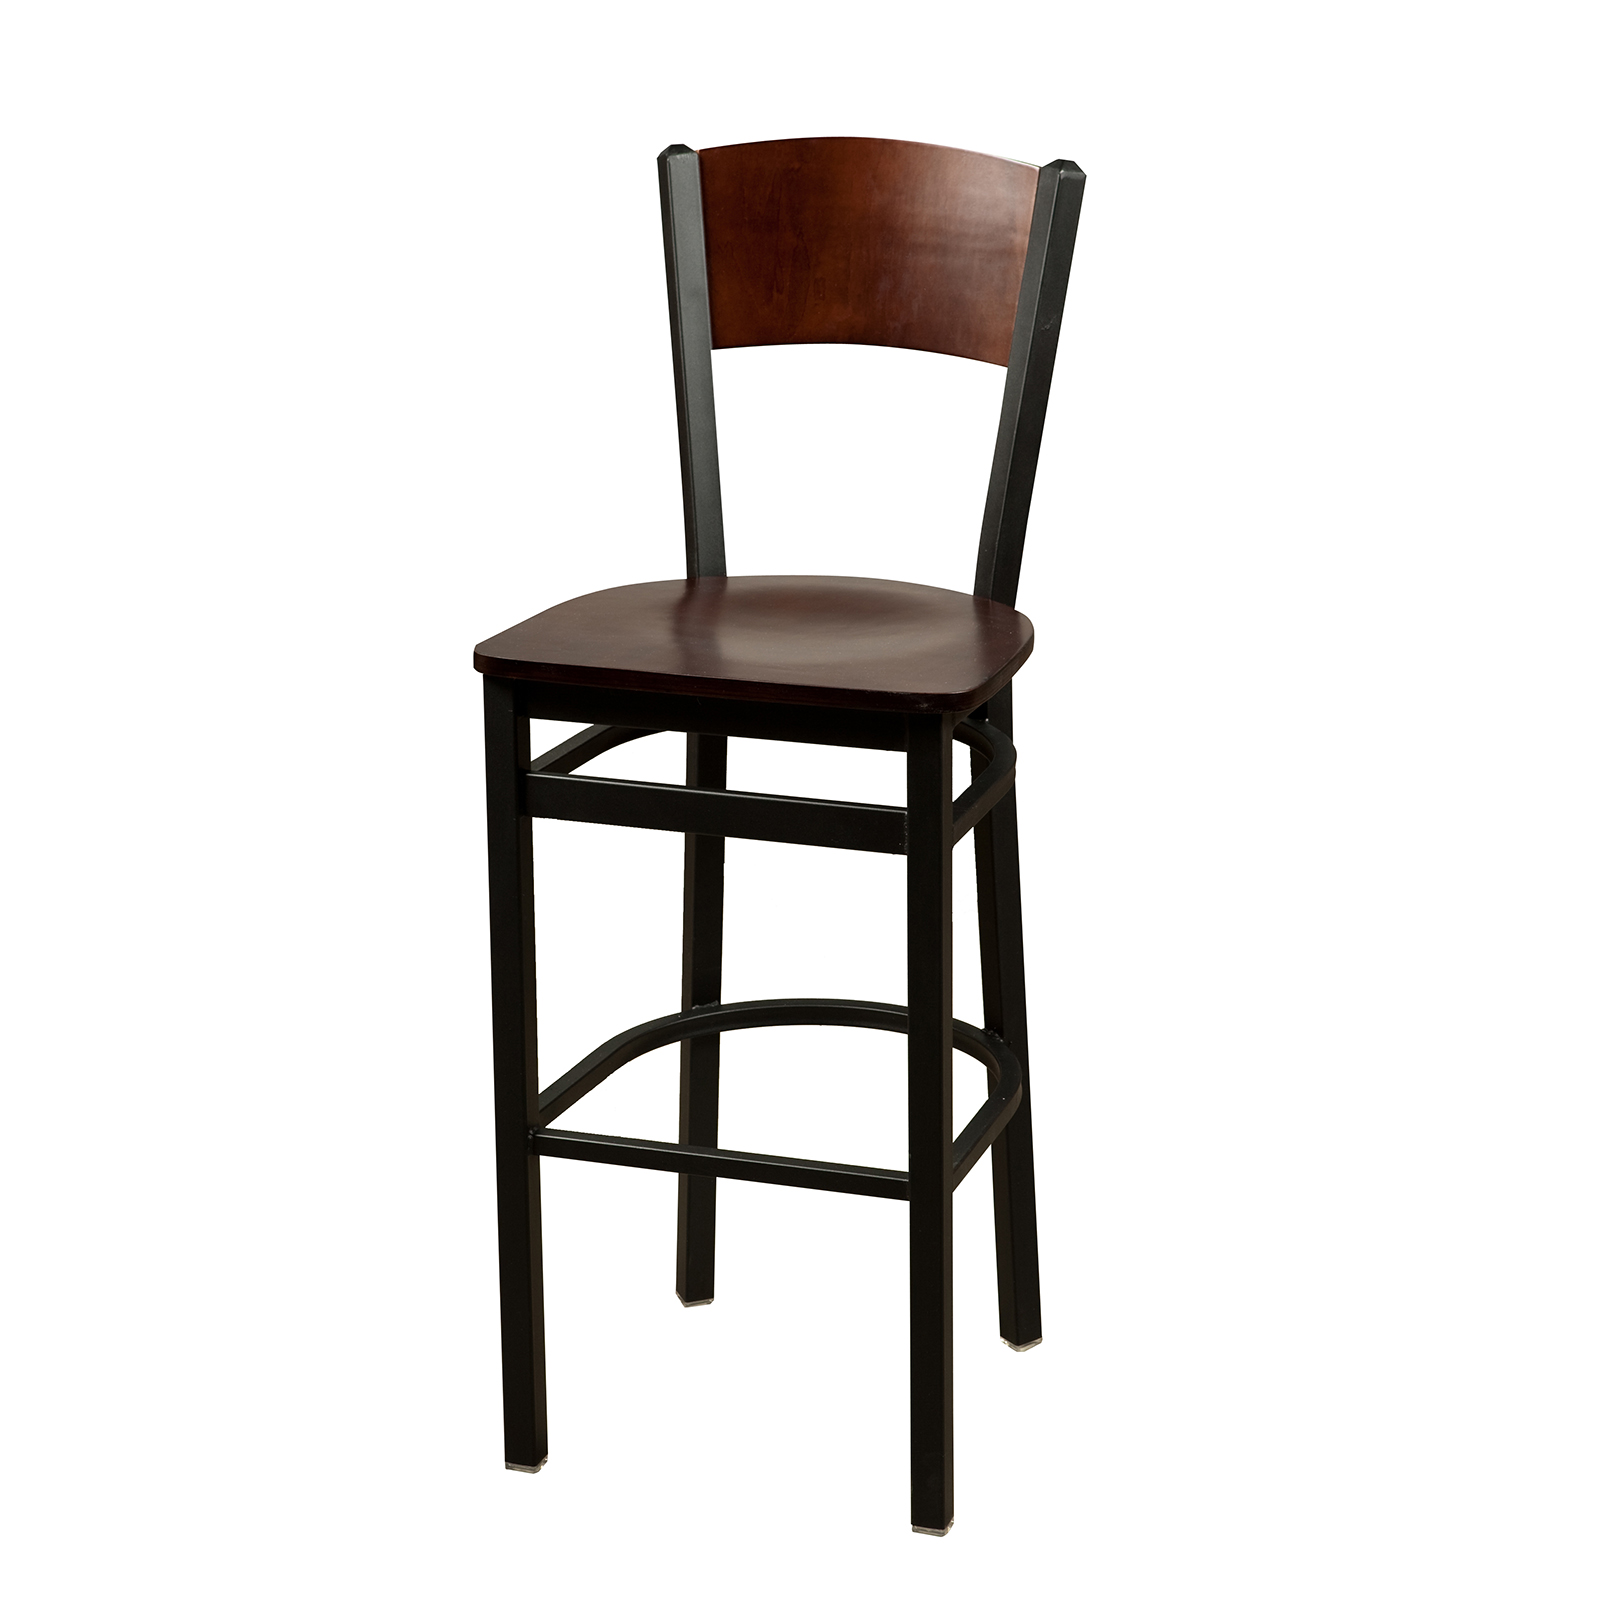 Oak Street SL2150-1-P bar stool, indoor